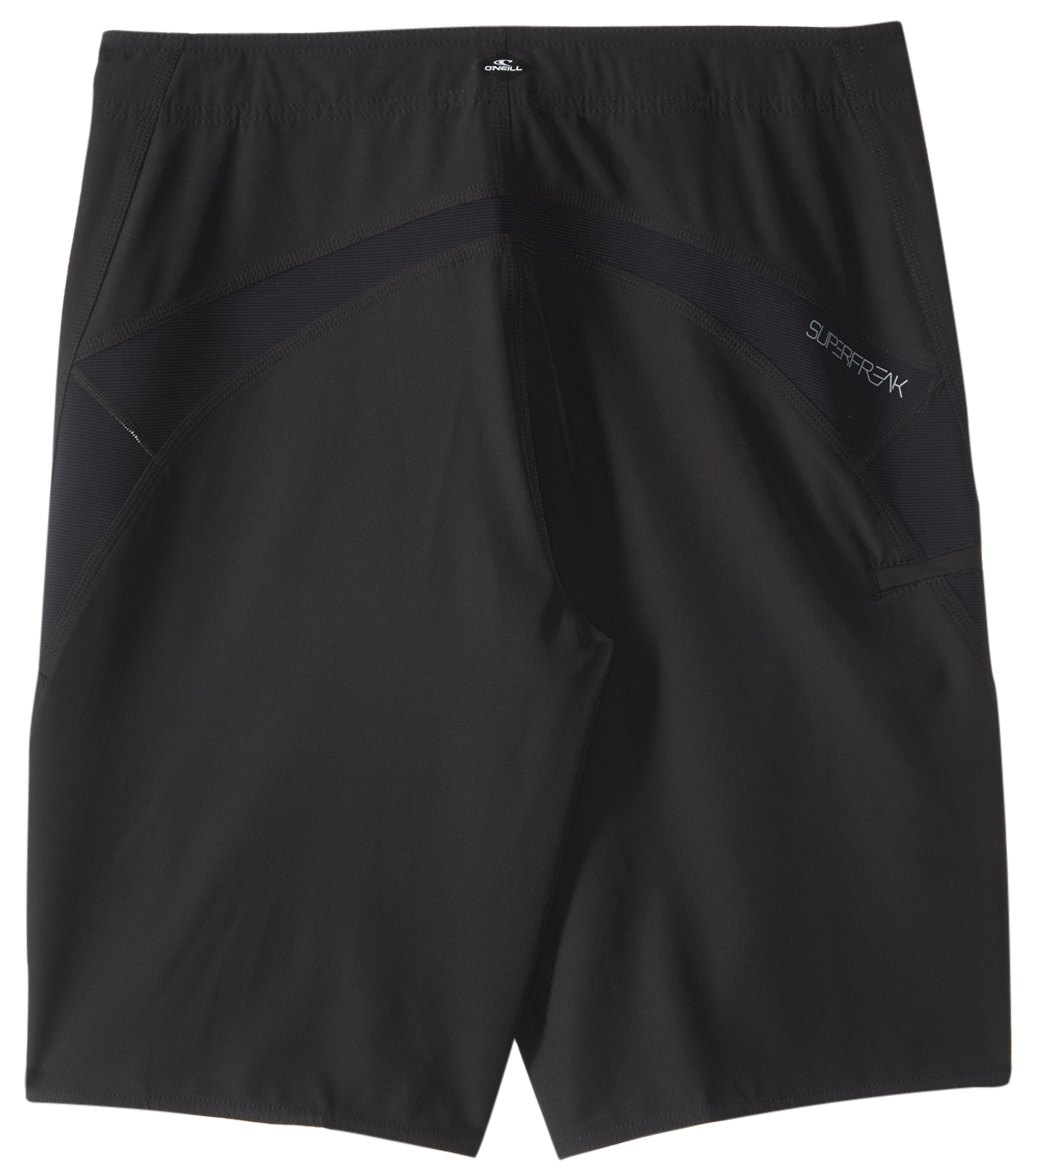 f4c417a5ab O'Neill Men's Superfreak Boardshort at SwimOutlet.com - Free Shipping